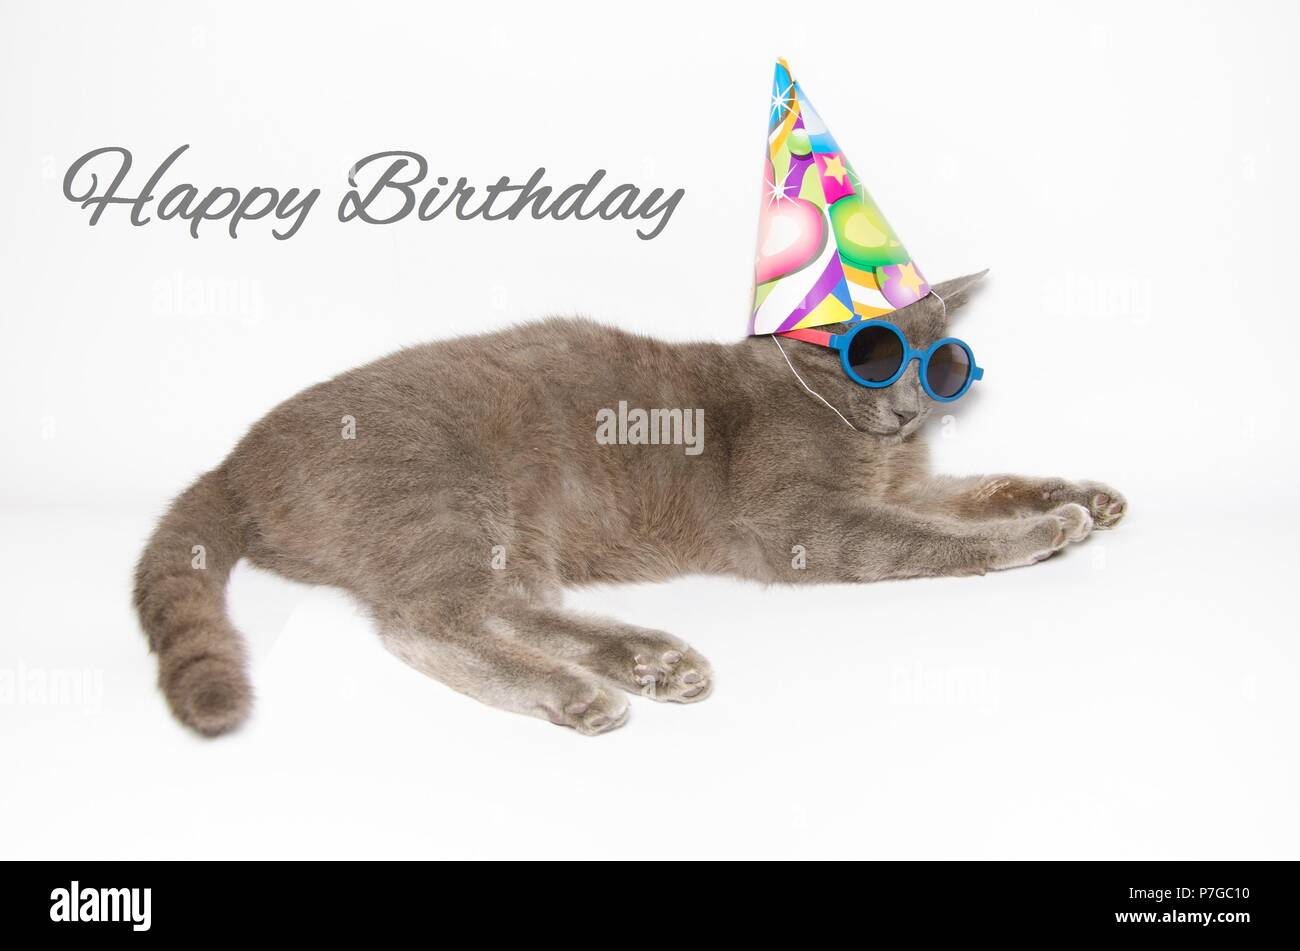 Happy Birthday Card With Funny Cat Wearing Sunglasses And Party Hat